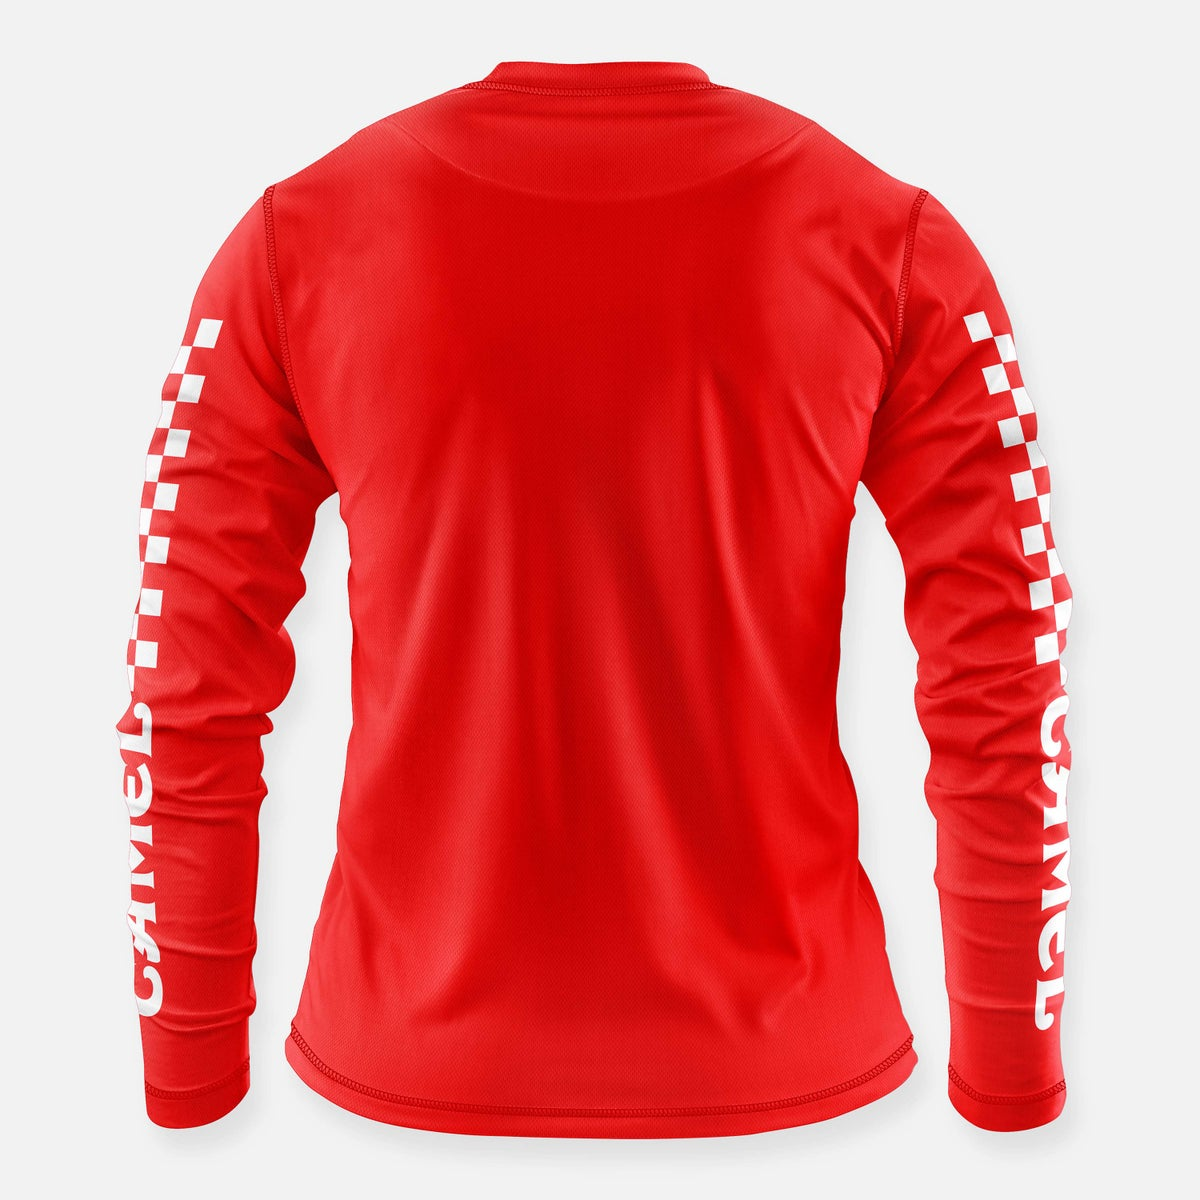 Image of CAMEL SMOKERCROSS JERSEY RED